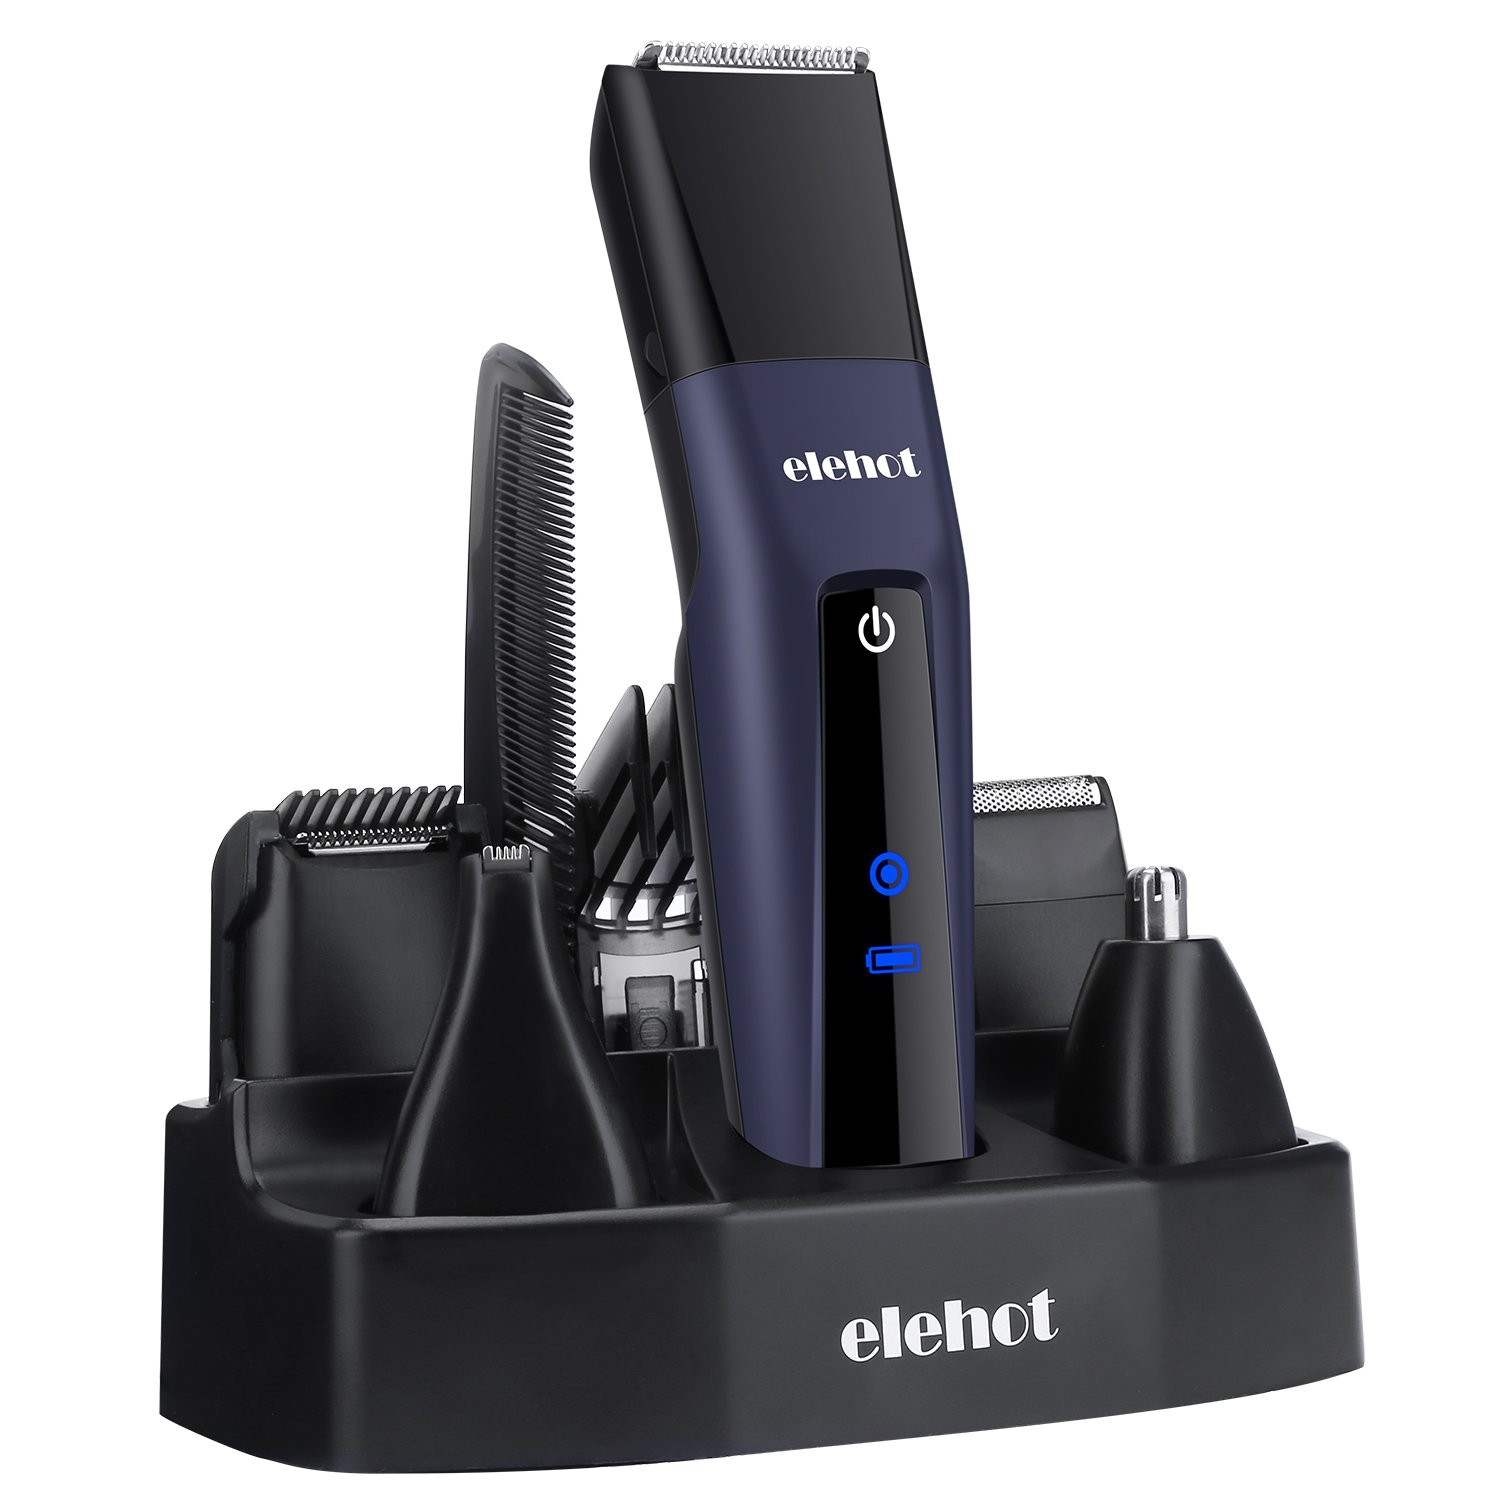 ELEHOT Hair Clipper Trimmer 5 in 1 Multifunctional Beard Grooming& Trimmer Kit with LCD Display, Replaceable Electric Shaver & Trimmer Heads for Men ELEHOT Direct